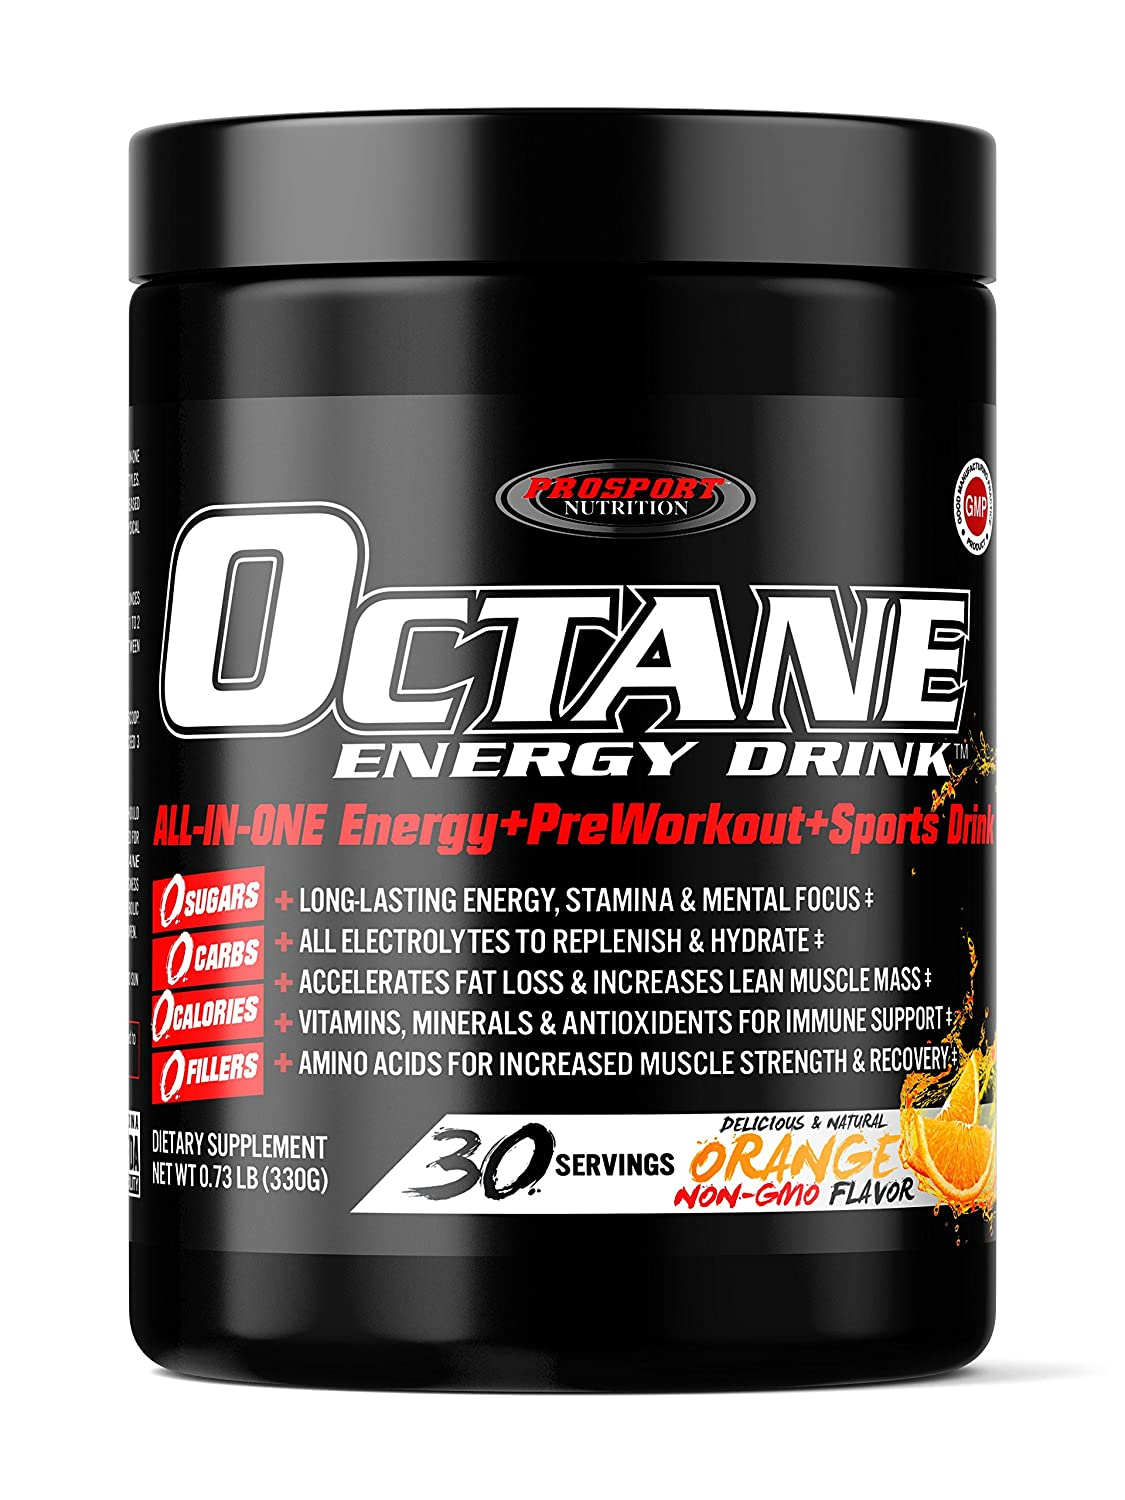 "OCTANE ENERGY DRINK, ALL-IN-ONE Healthy Energy Drink, Sports Drink & Pre-Workout! - 30 Drinks - $2 a drink ""DISCOUNTED"" from MSRP of $3 a drink."